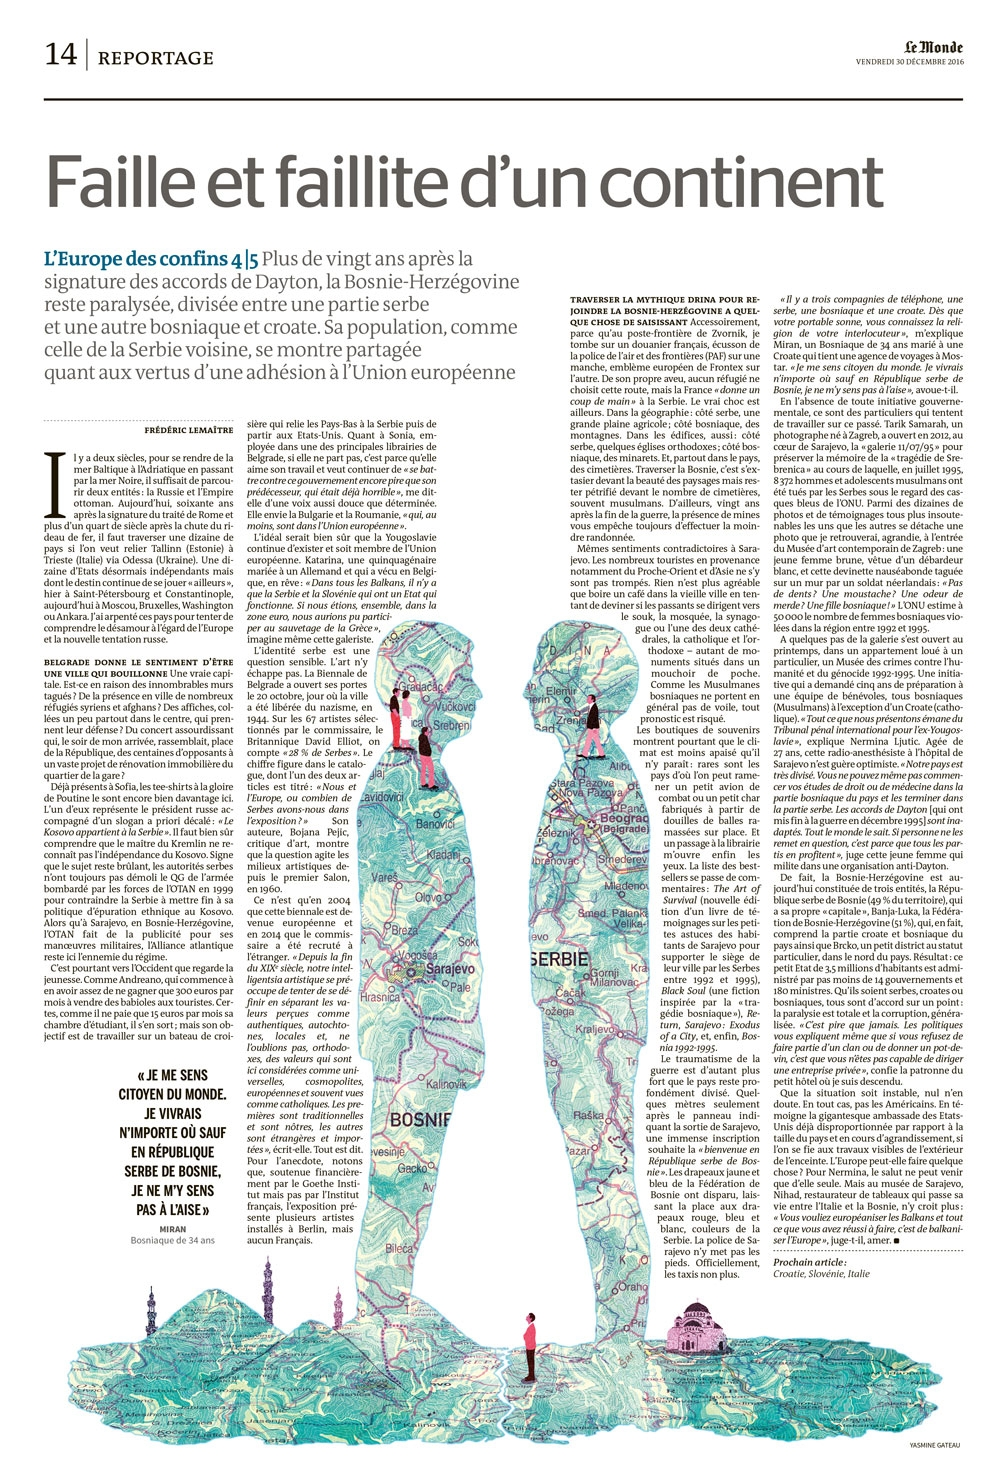 yasmine gateau, illustration, le monde, europe, baltes, cartographie